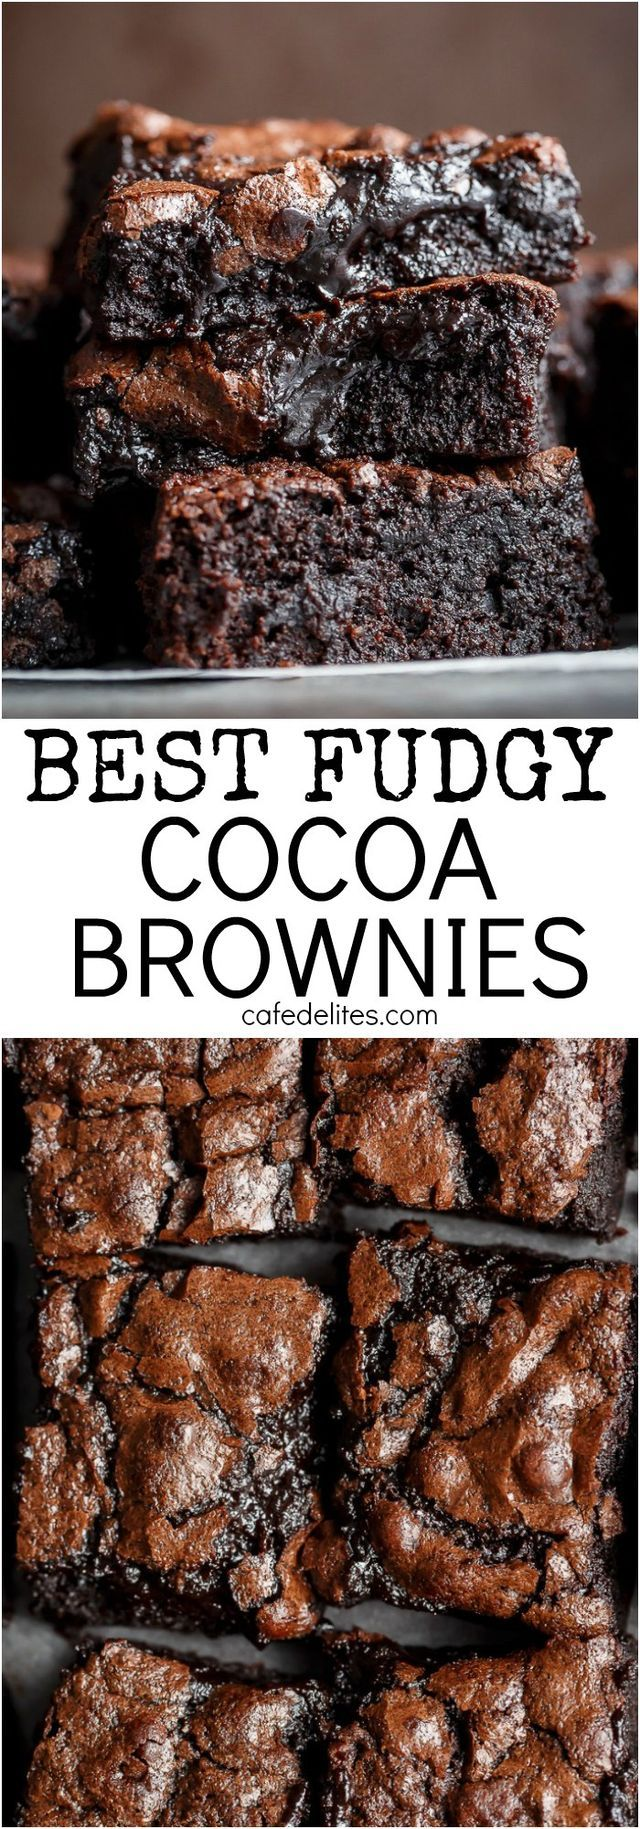 Best Fudgy Cocoa Brownies The Best, Fudgy ONE BOWL Cocoa Brownies! A special addition gives these brownies a super fudgy centre without losing that crispy, crackly top! What if I told you that you DO